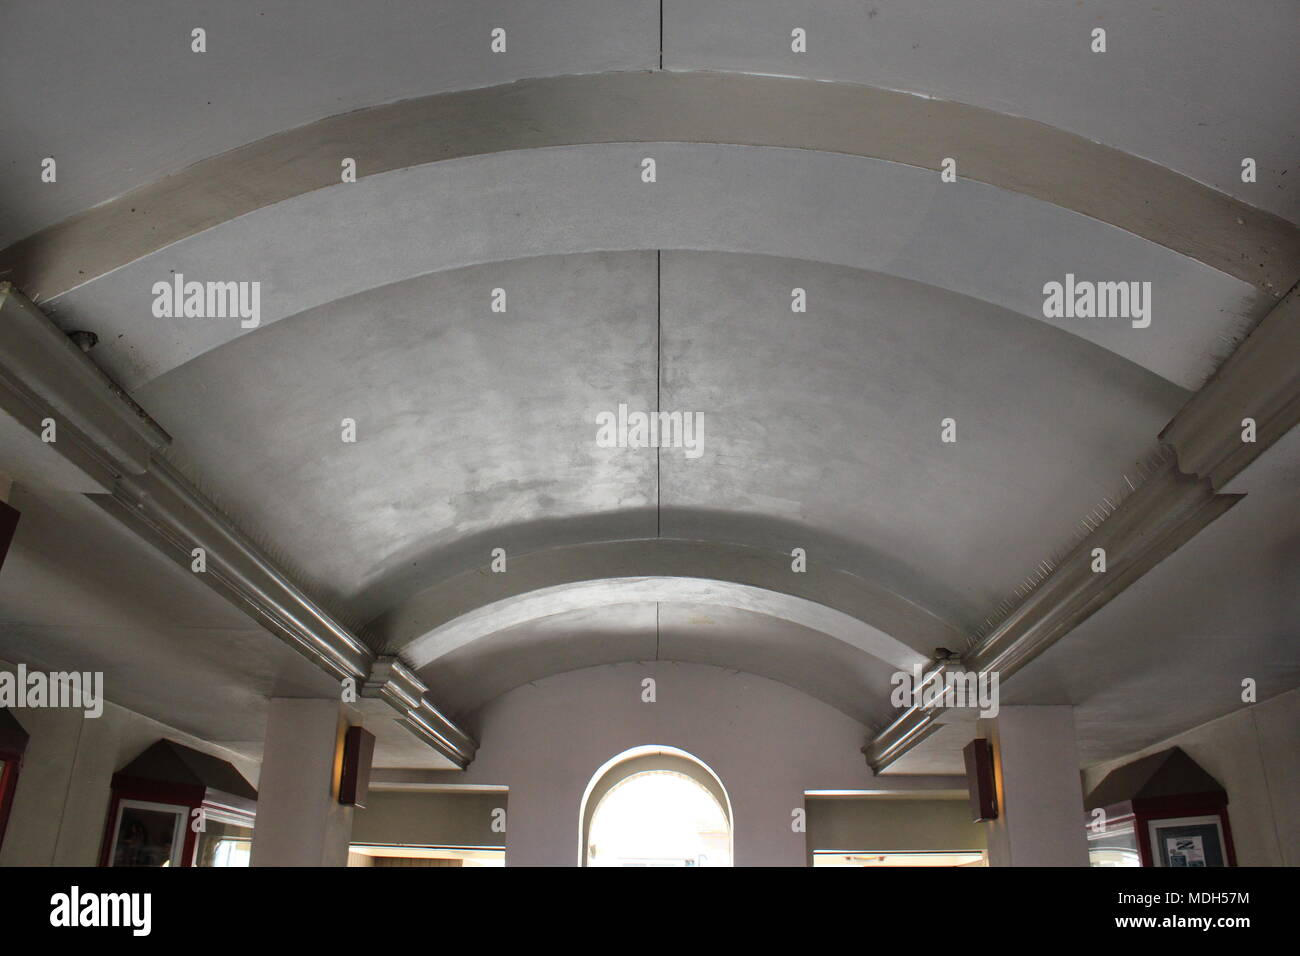 Architecturally decorative ceiling covering an outdoor passageway. - Stock Image